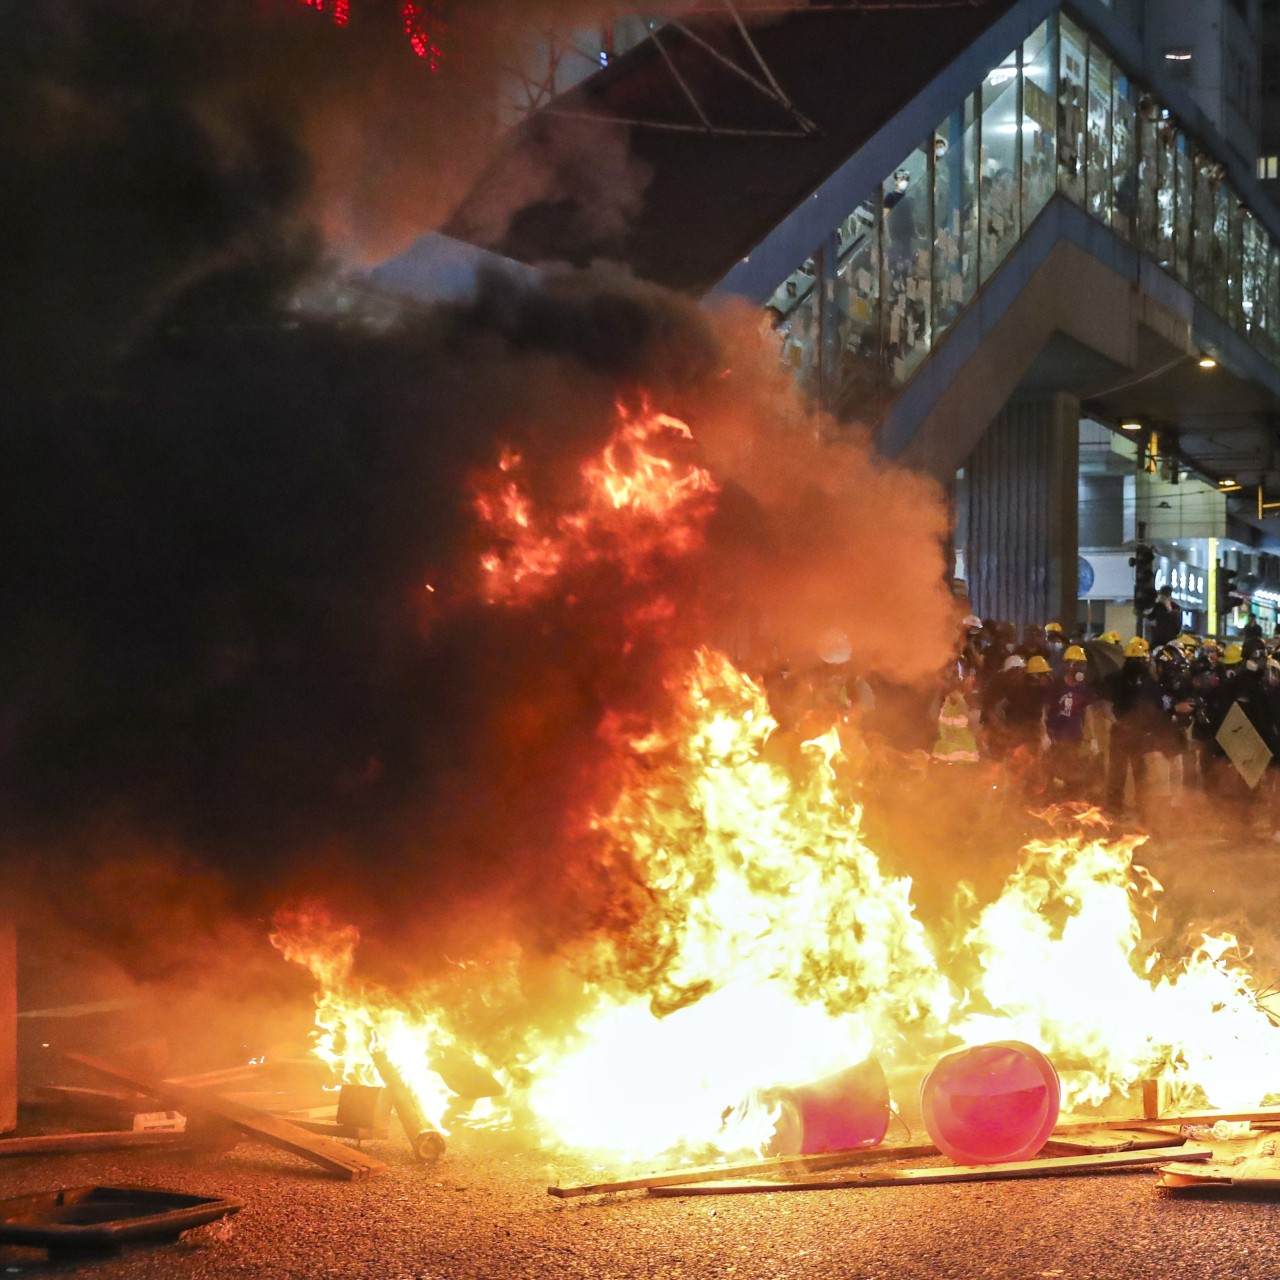 Hong Kong police play catch-up as anti-government protesters wreak